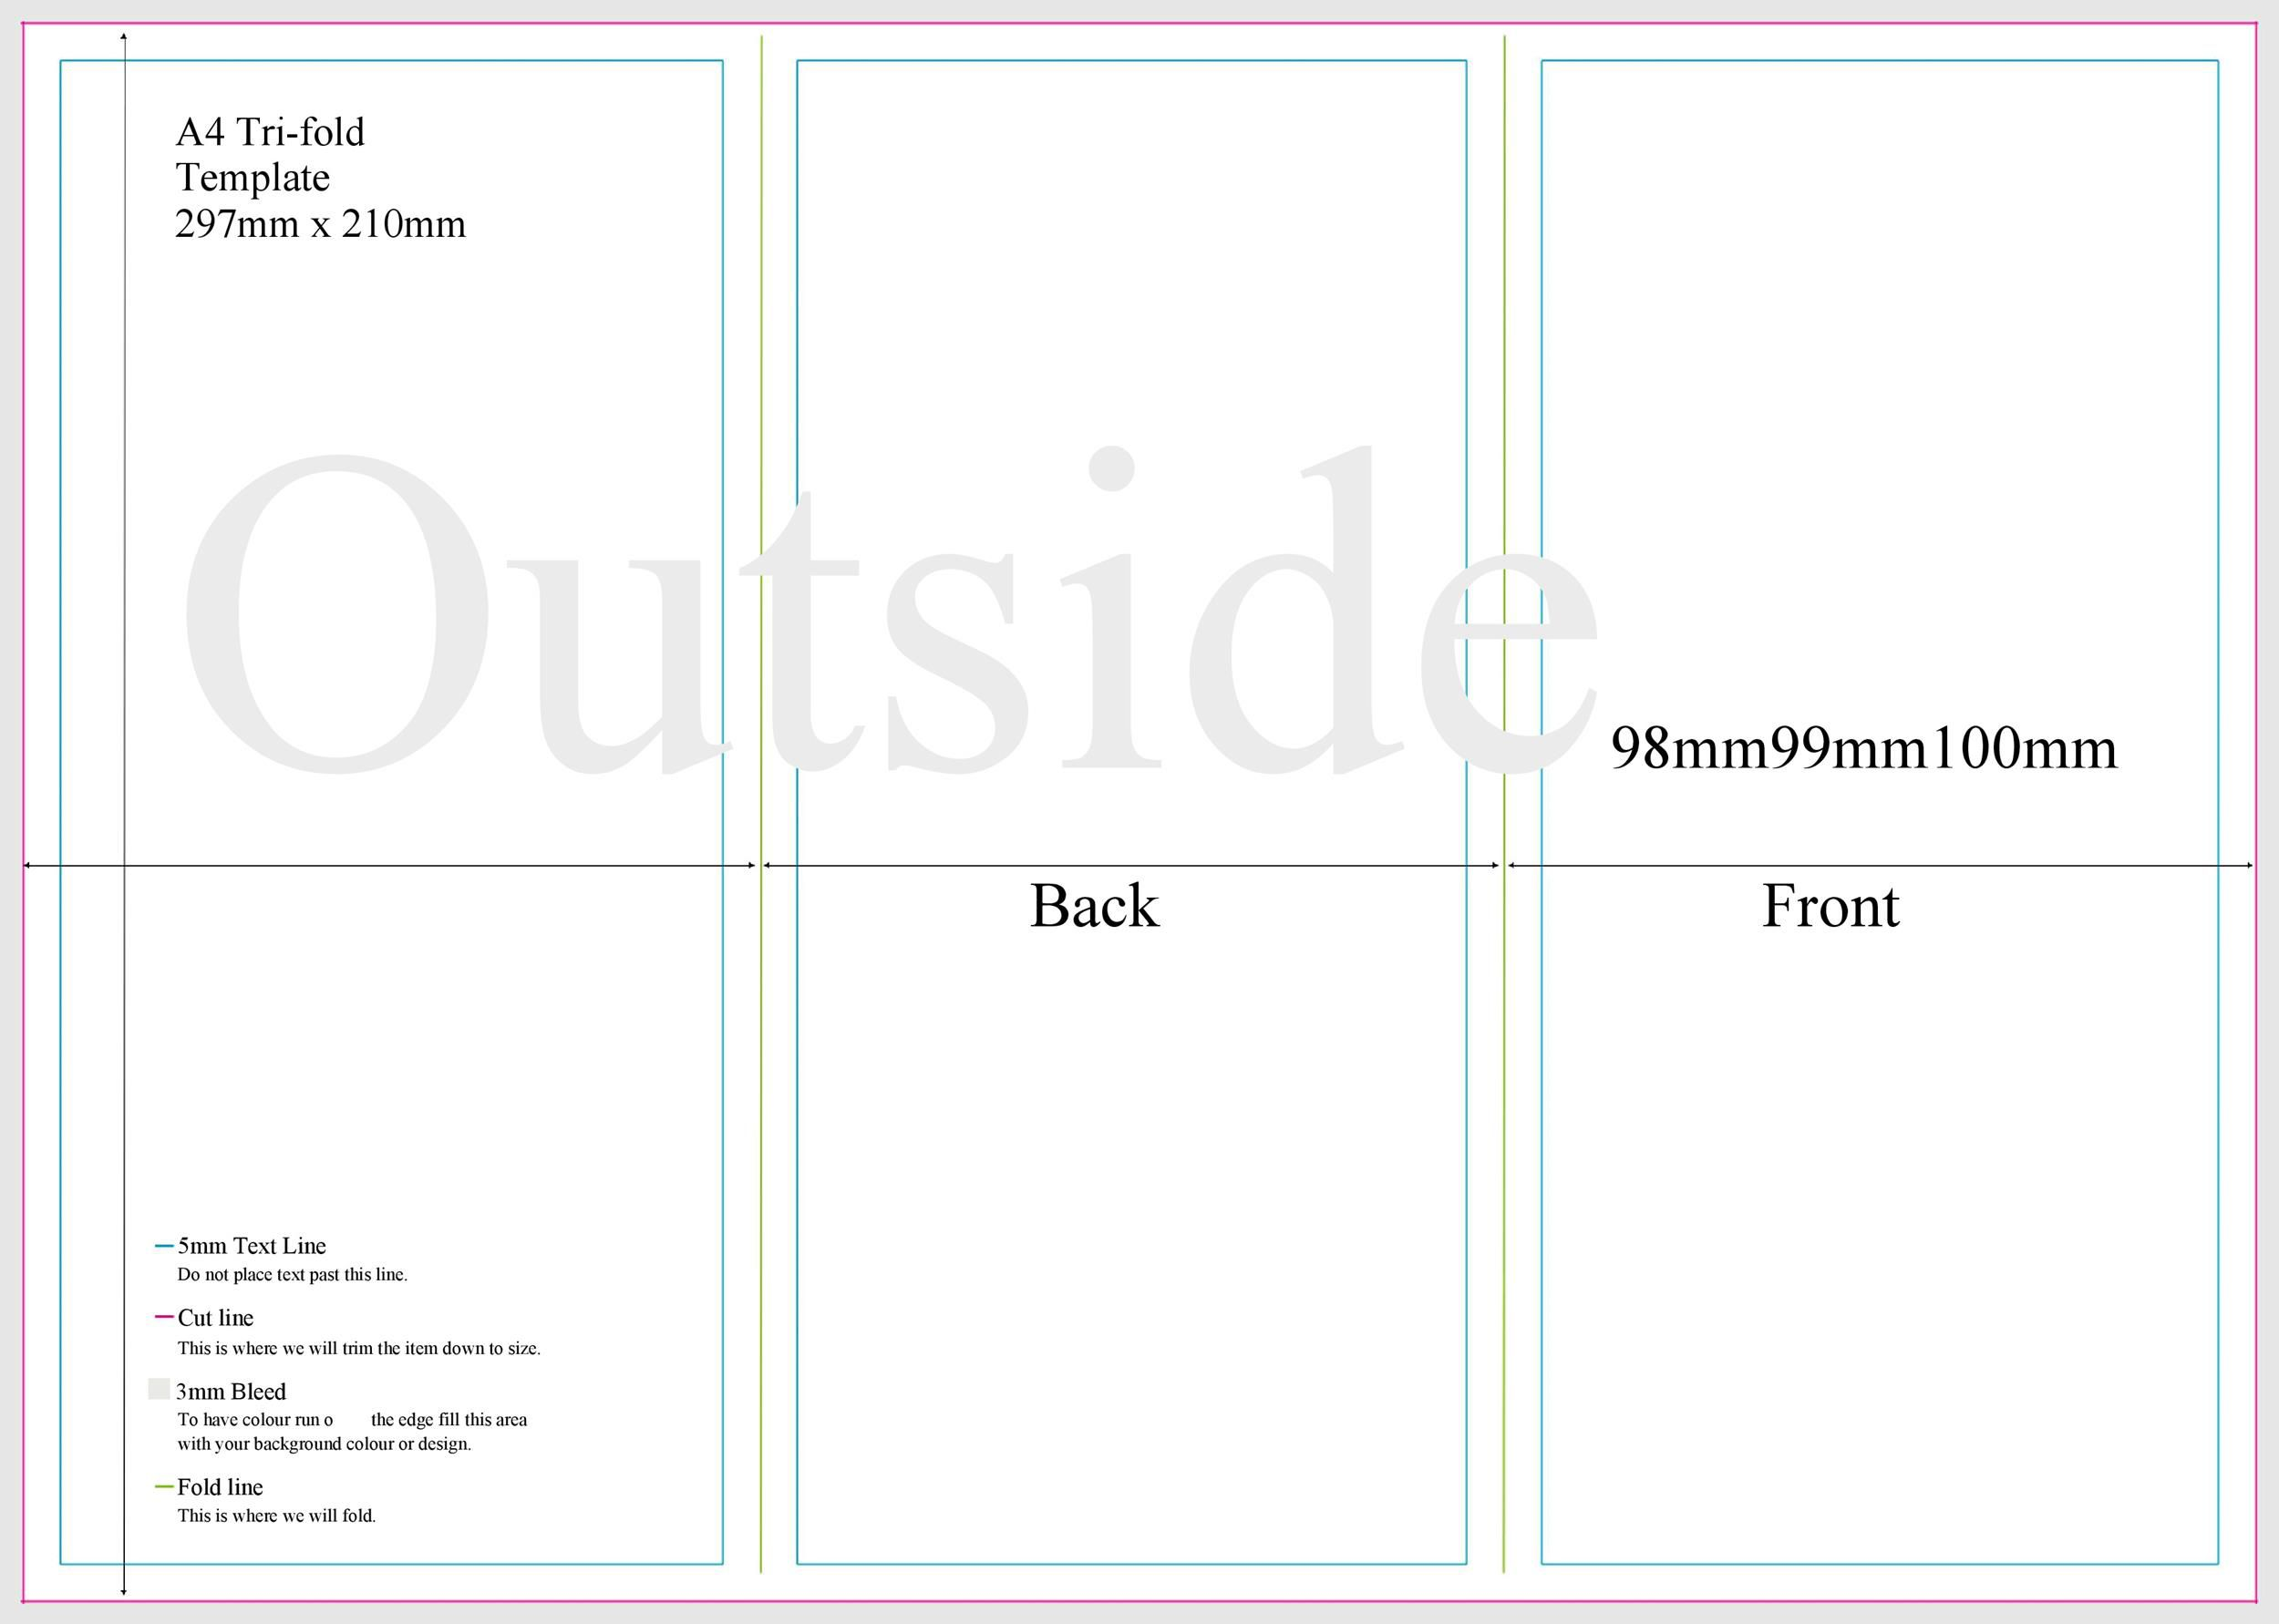 007 Awful Folding Brochure Template Google Doc High Resolution  Docs 2 Fold HalfFull